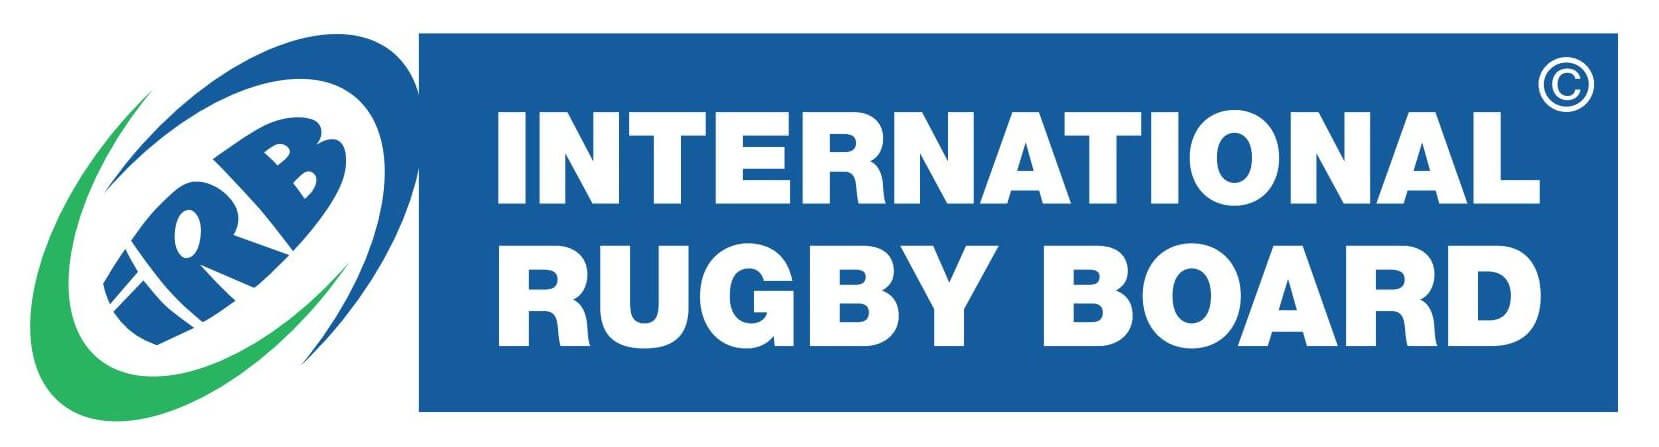 International Rugby Board IRB logo